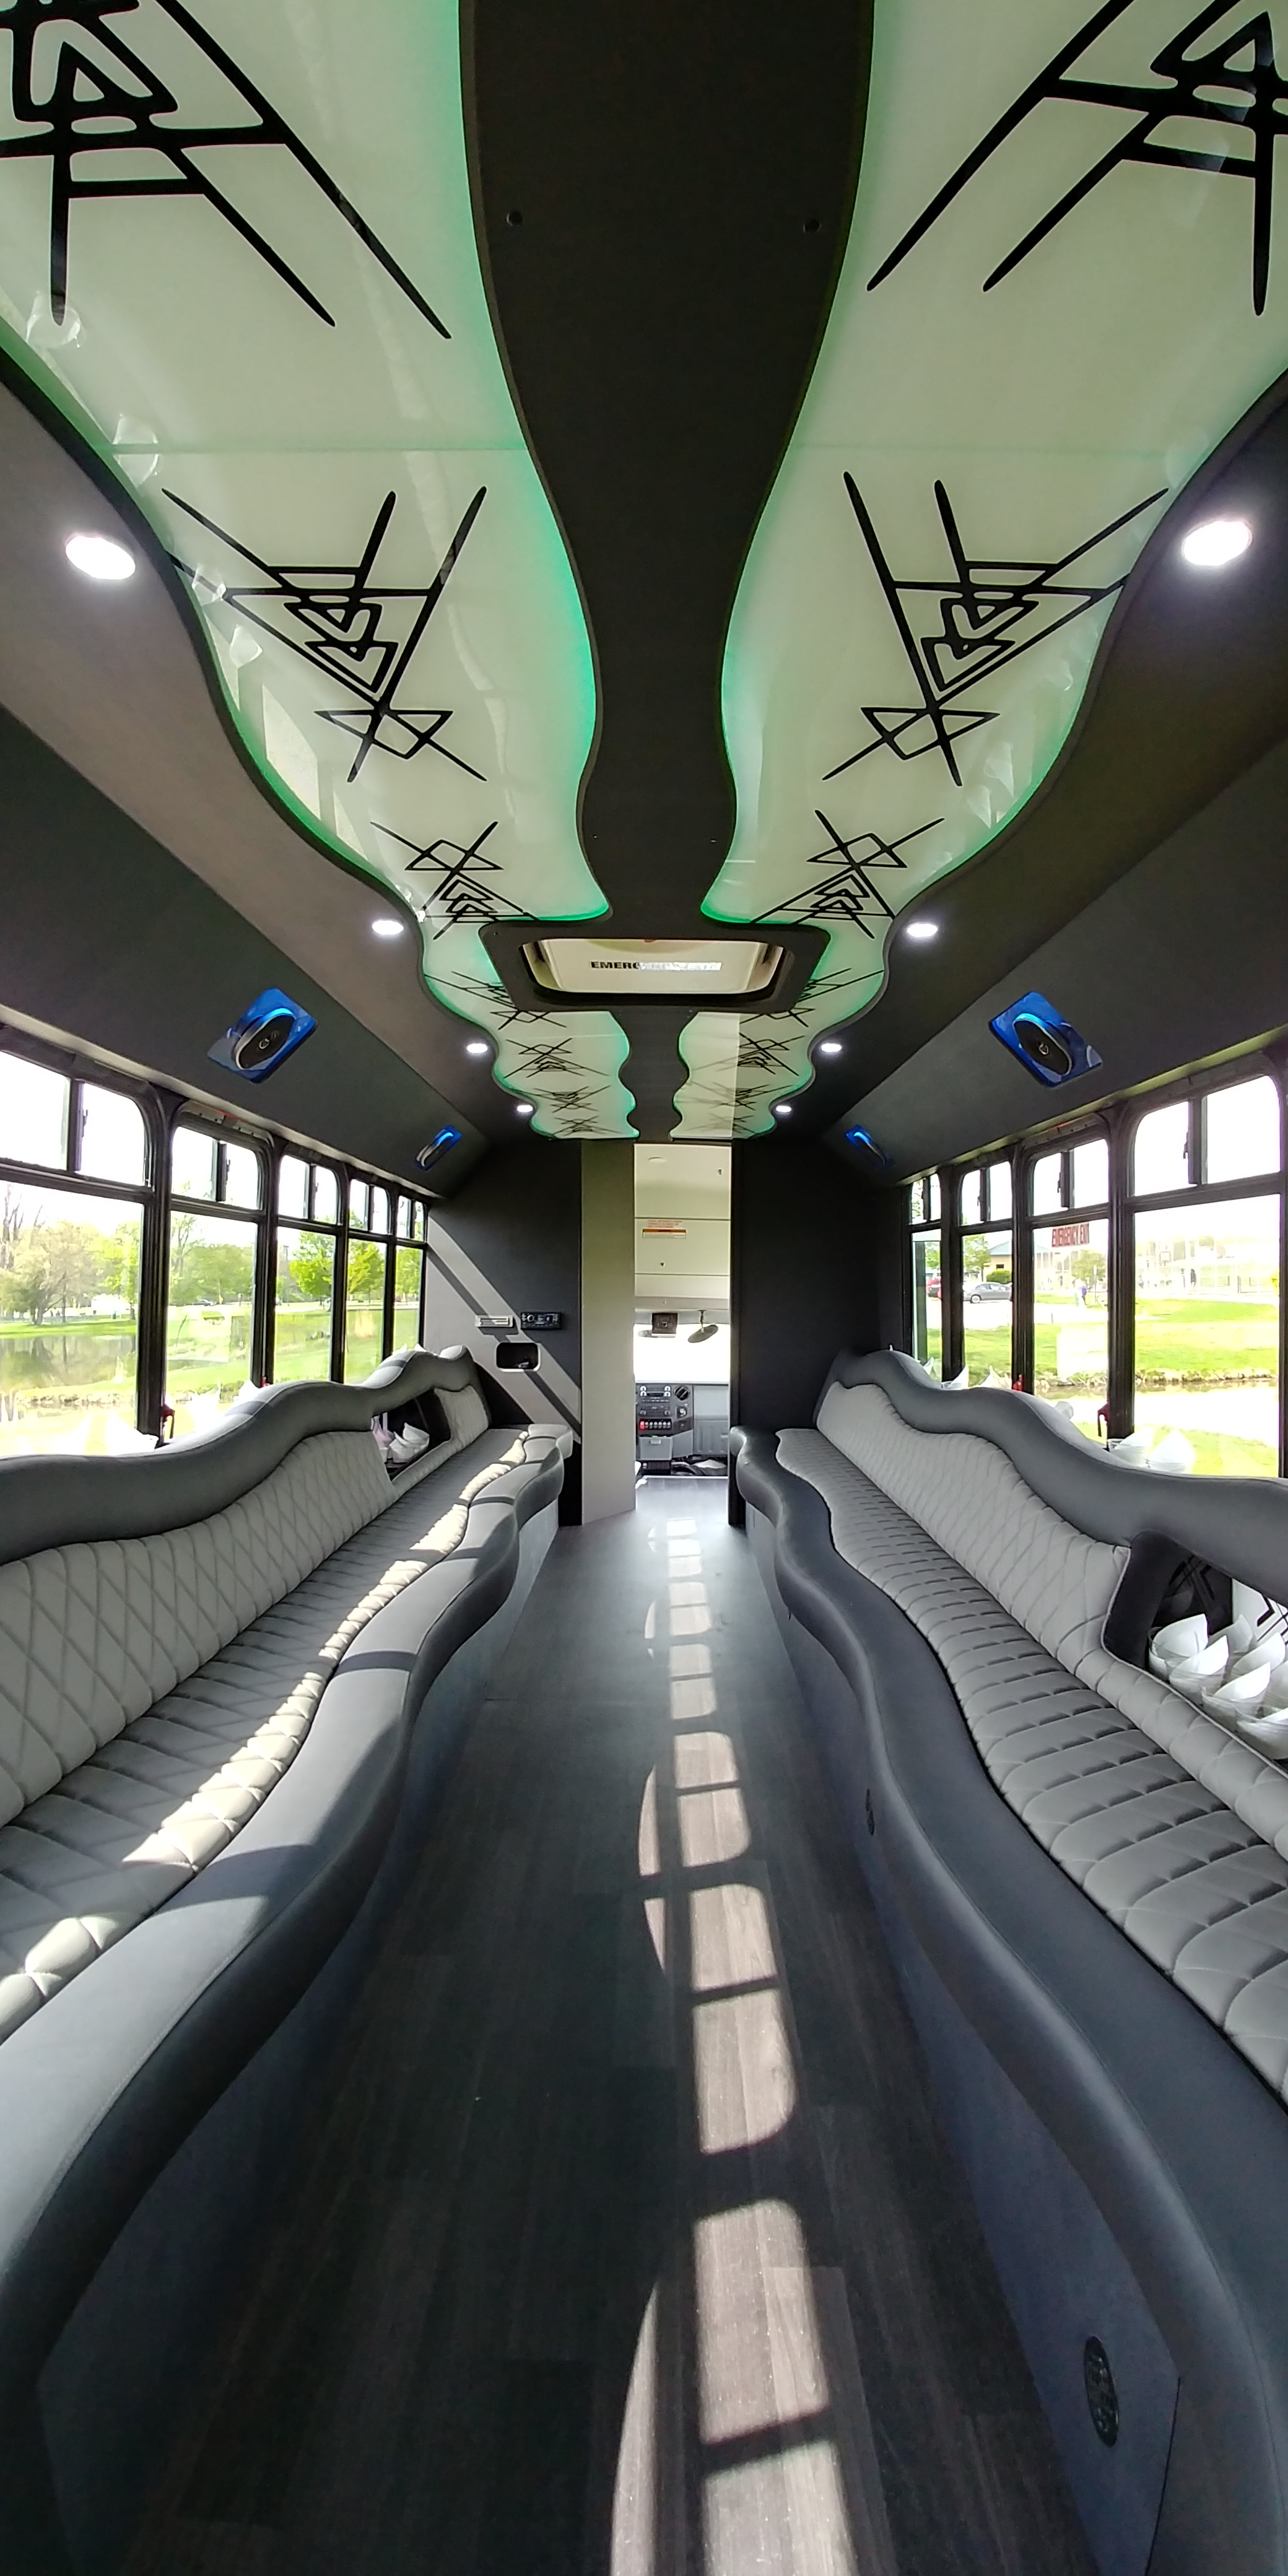 28 Passenger Luxury Limo Bus Interior 8